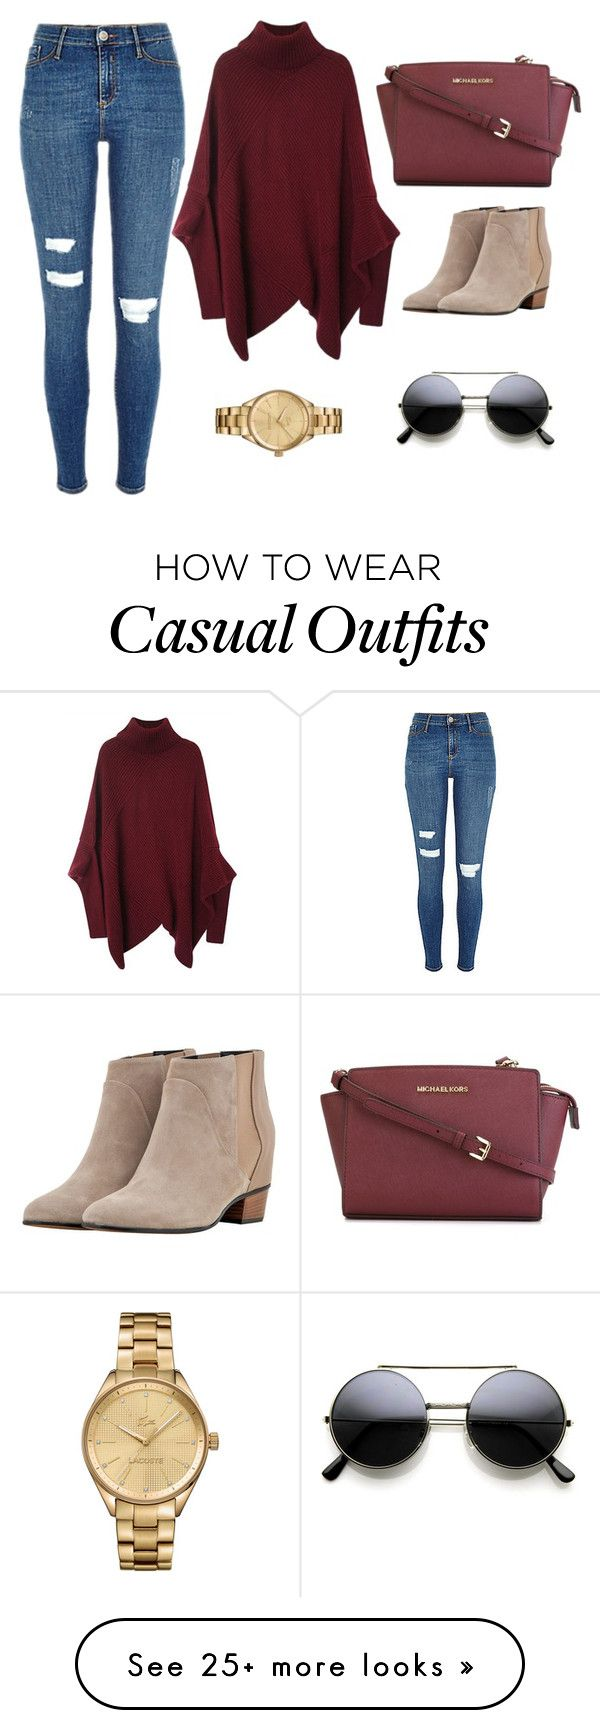 """Casual Outfit"" by alina-w on Polyvore featuring MICHAEL Michael Kors, Golden Goose, Lacoste, women's clothing, women's fashion, women, female, woman, misses and juniors"